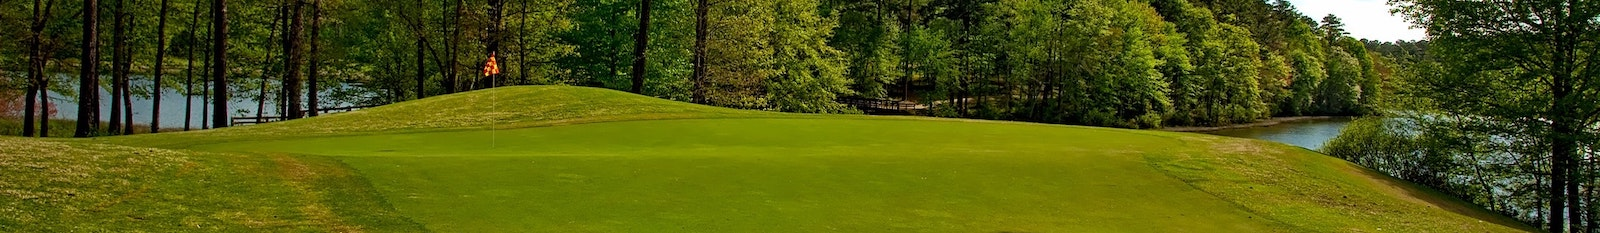 Golf green which is something an early retiree might care about.